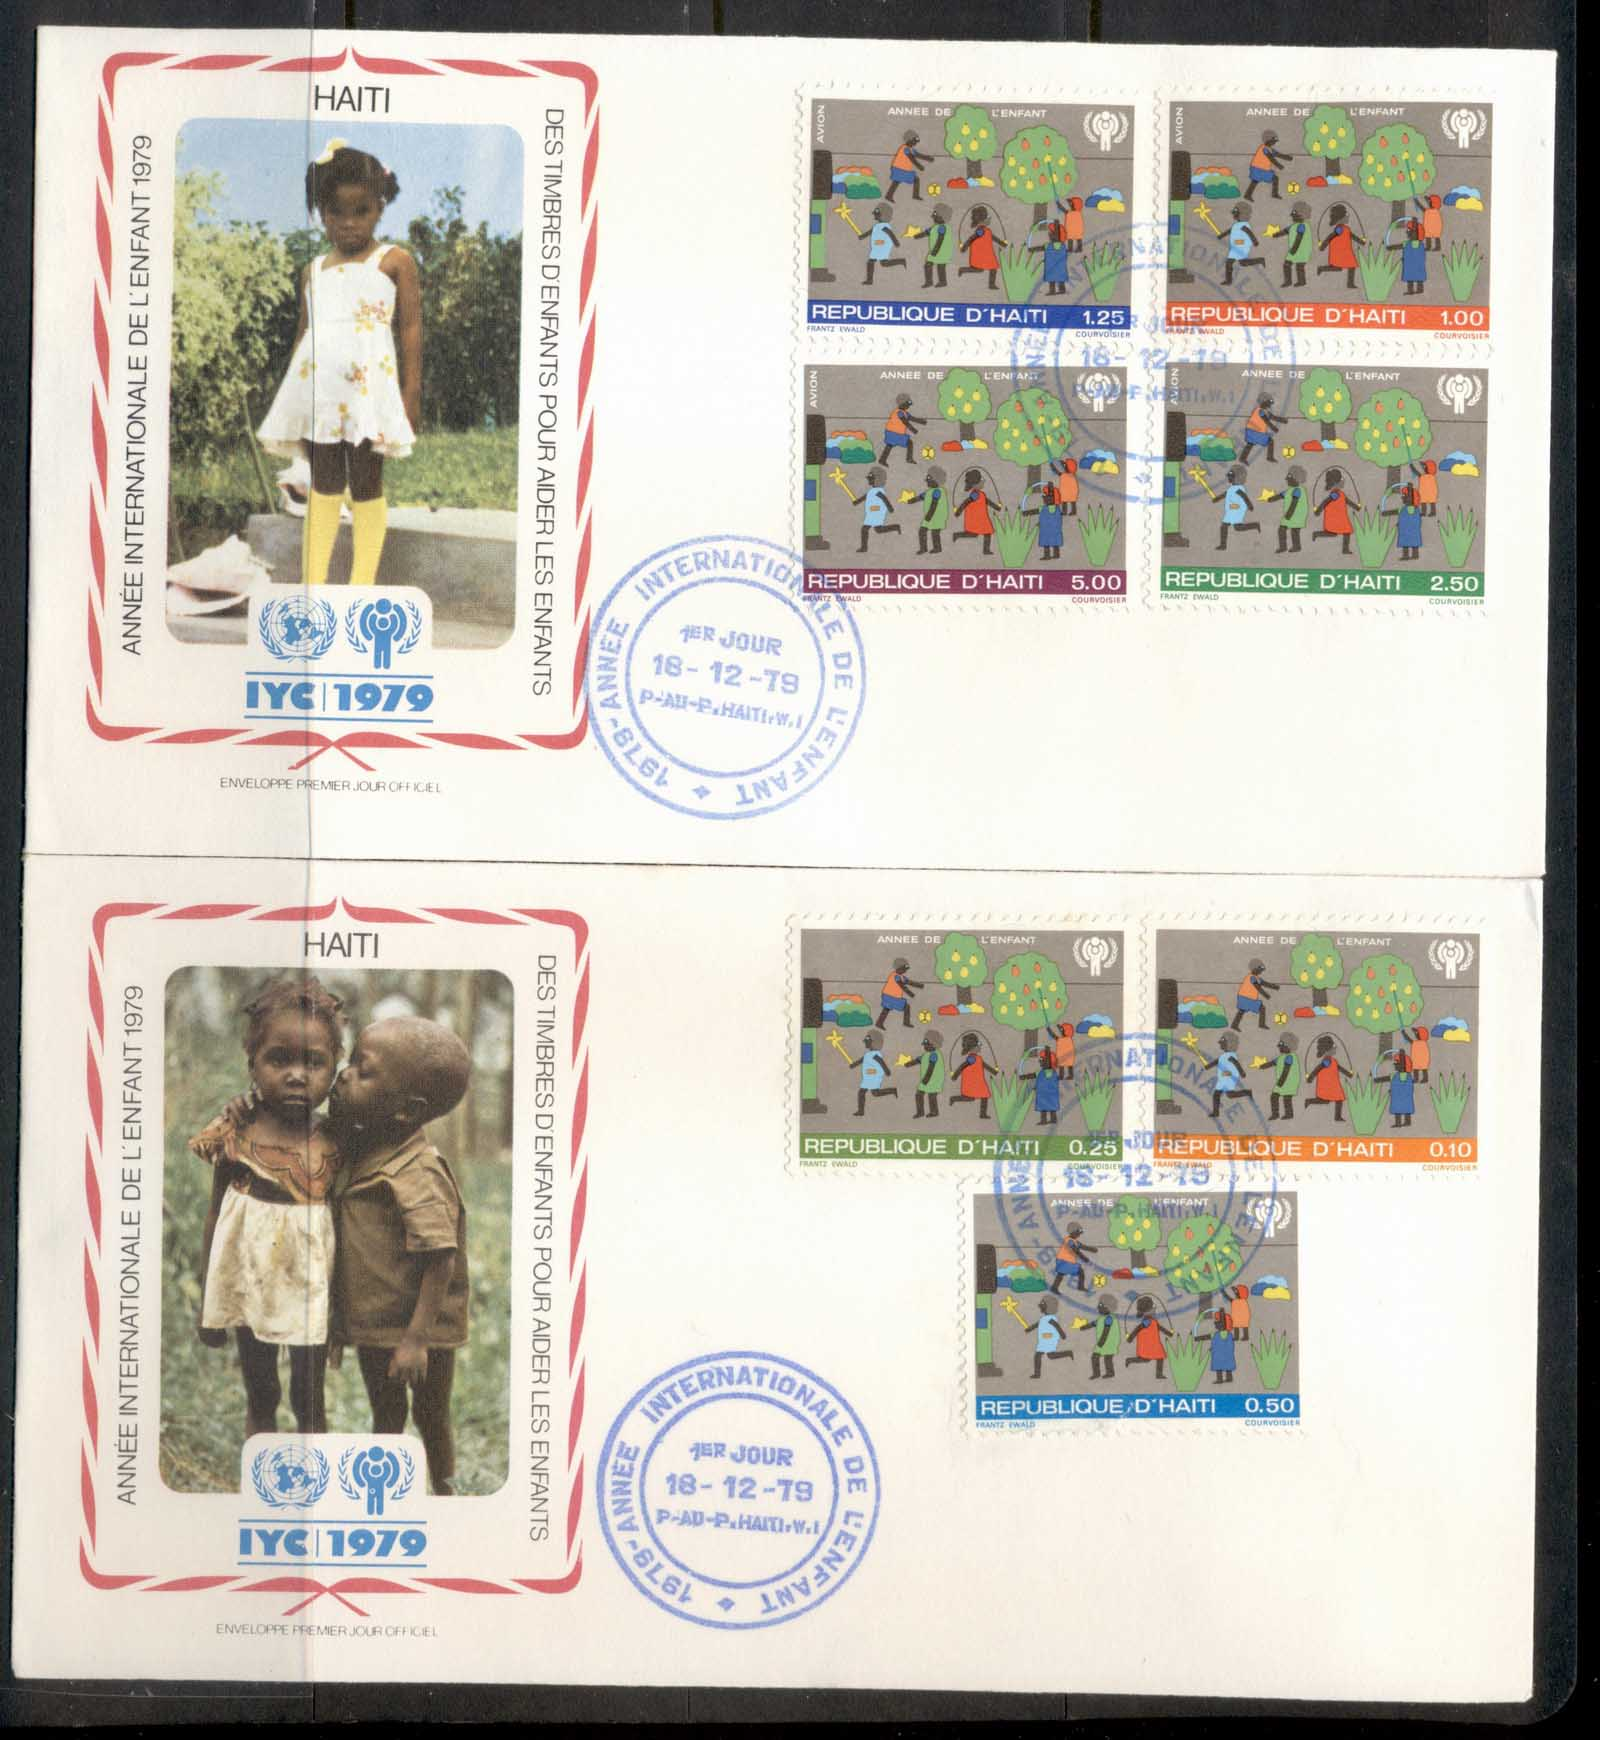 Haiti 1979 IYC International year of the Child 2x FDC